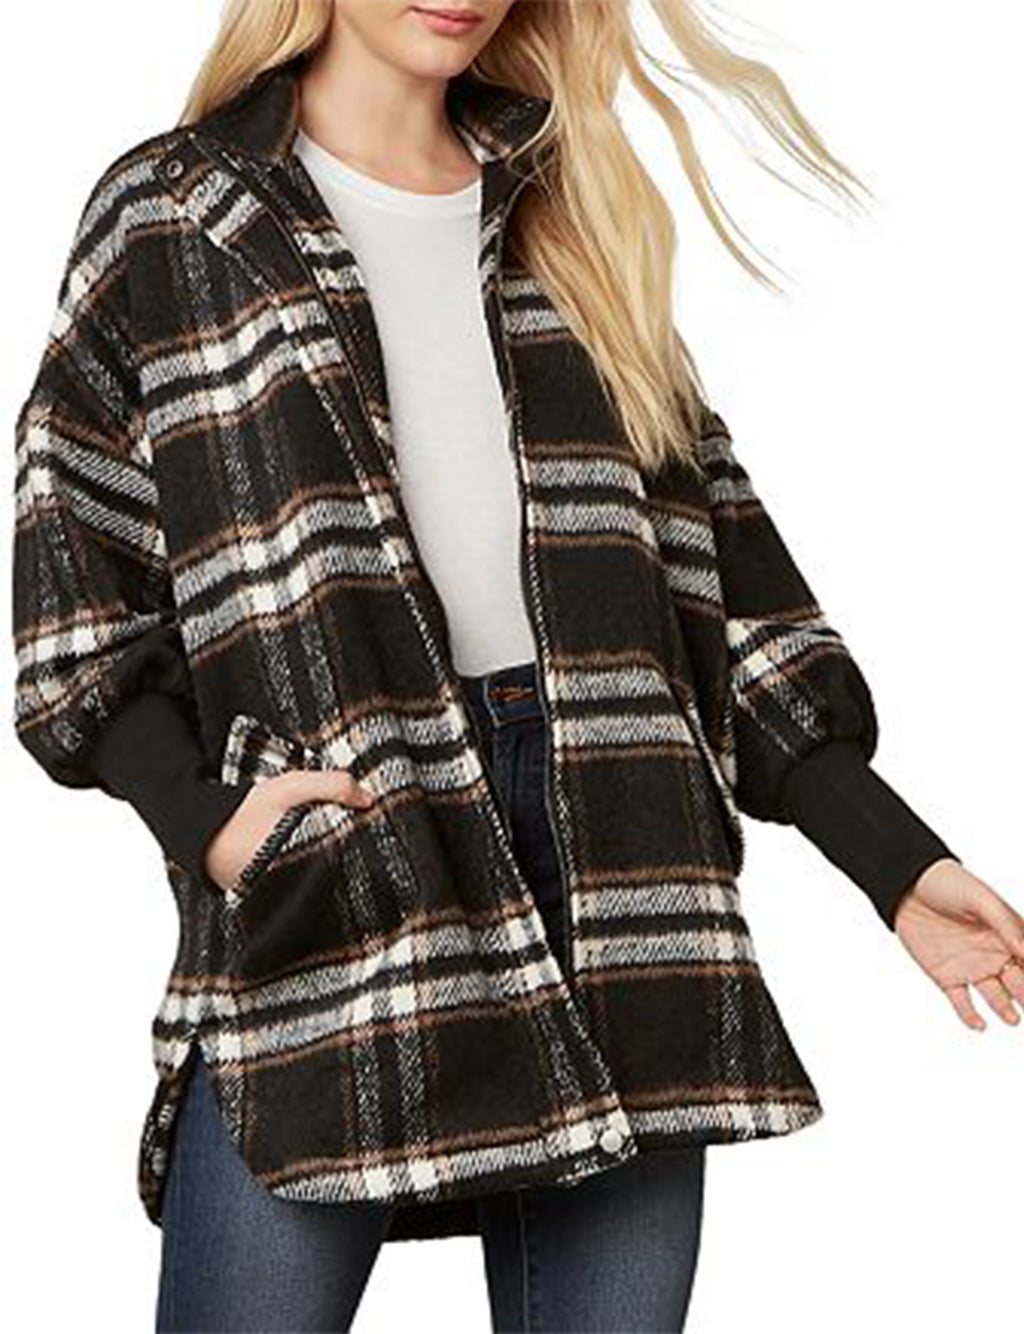 Plaid Times Jacket in Black